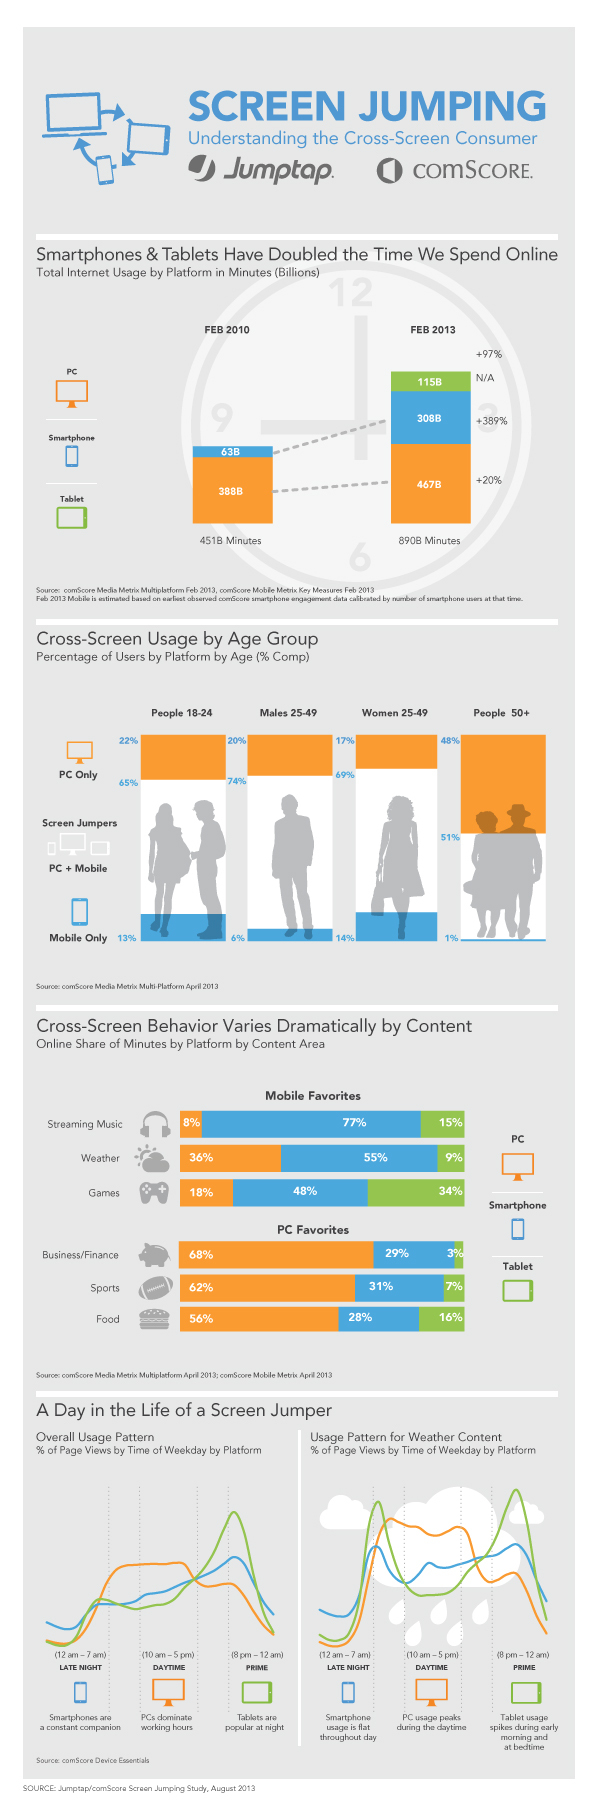 Jumptap & comScore Screen Jumping Study Infographic (Graphic: Business Wire)